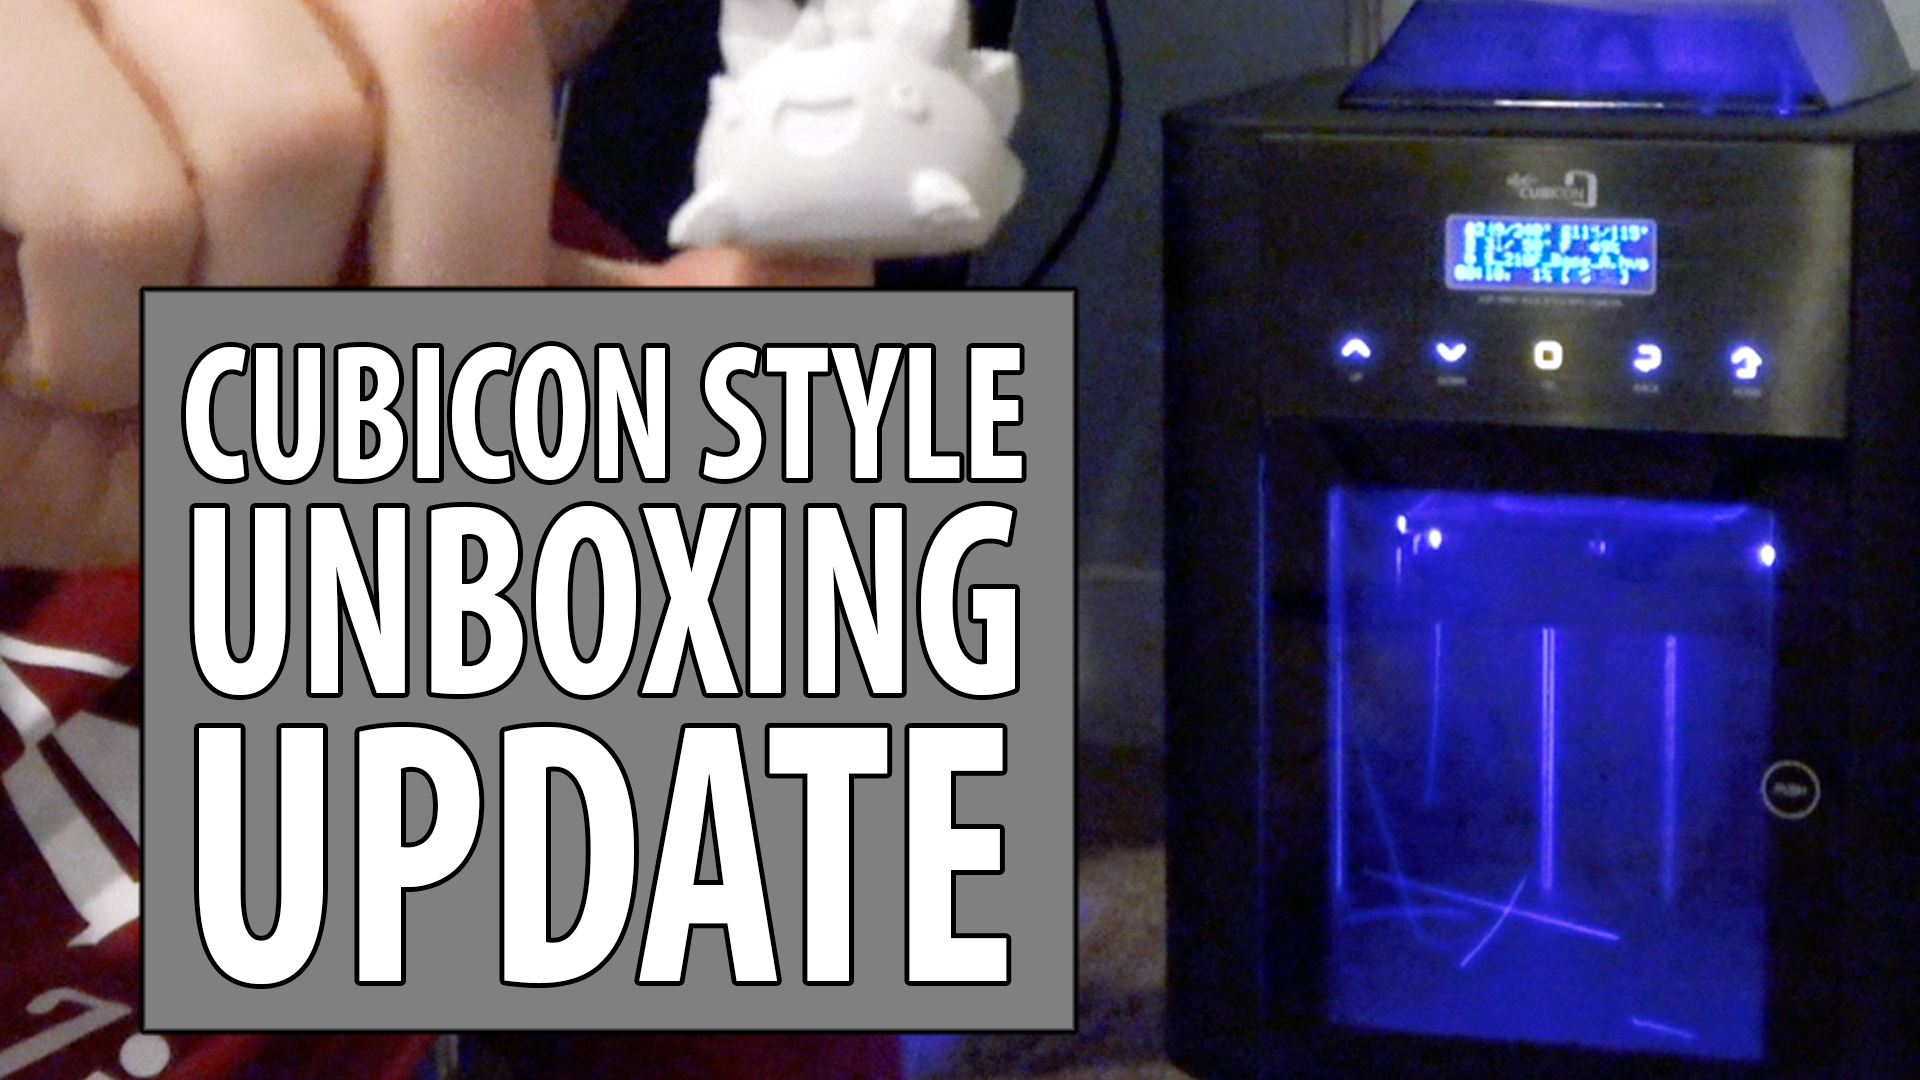 Update on the Cubicon Style Unboxing